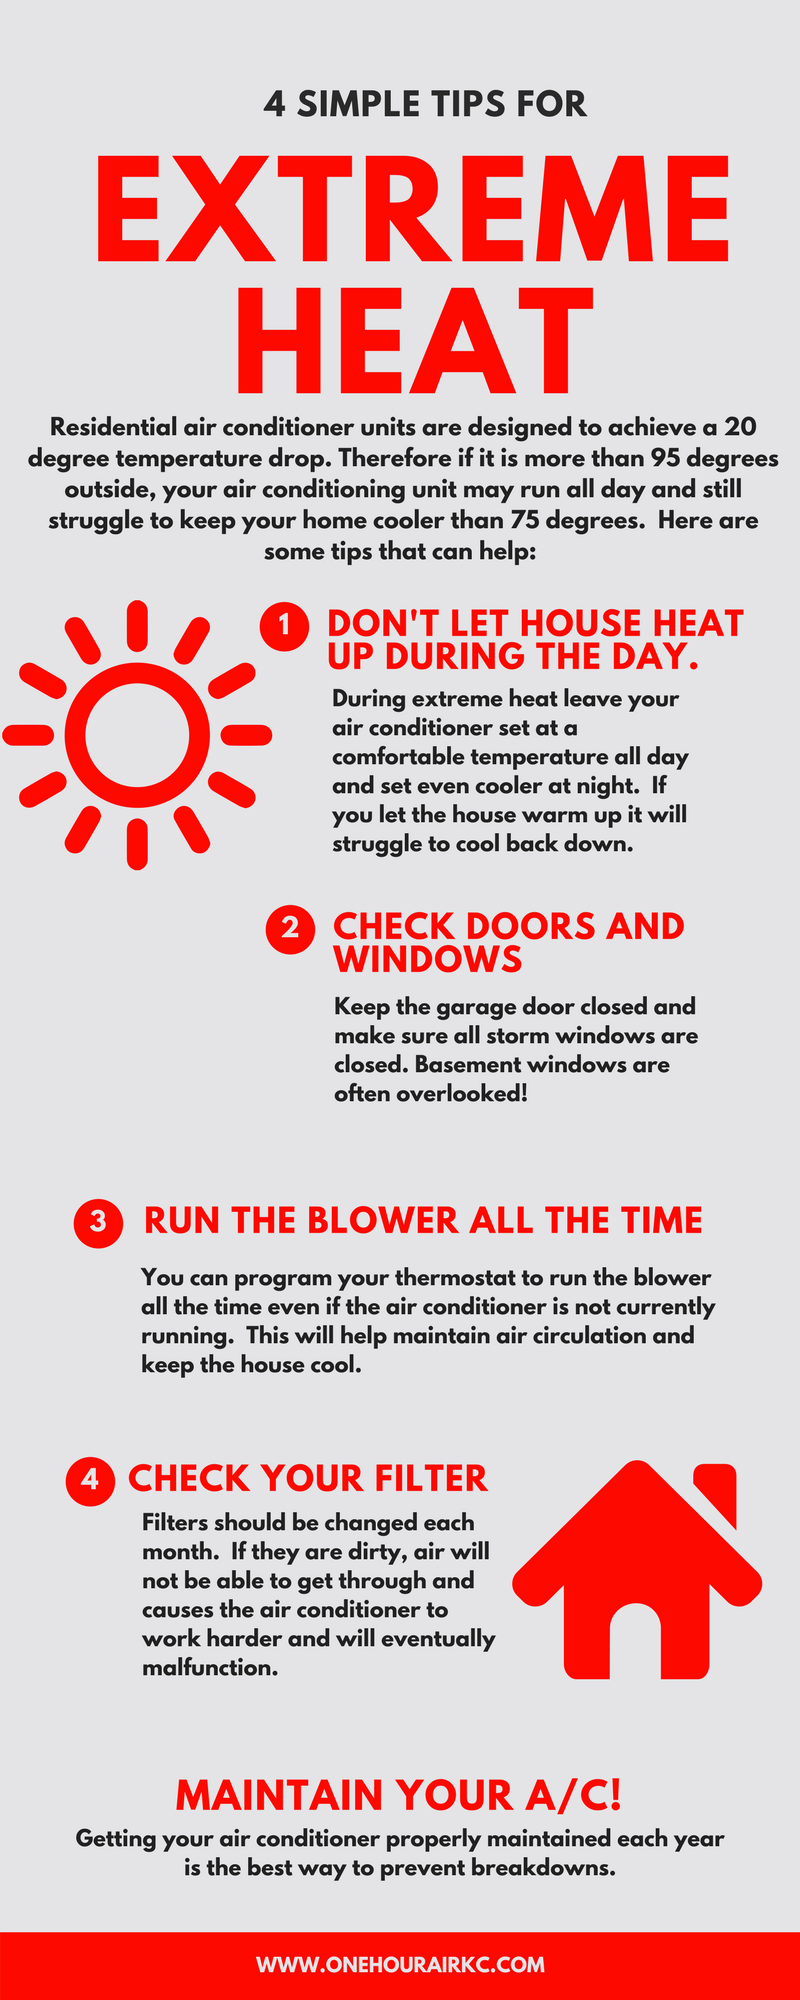 Tips for Extreme Heat